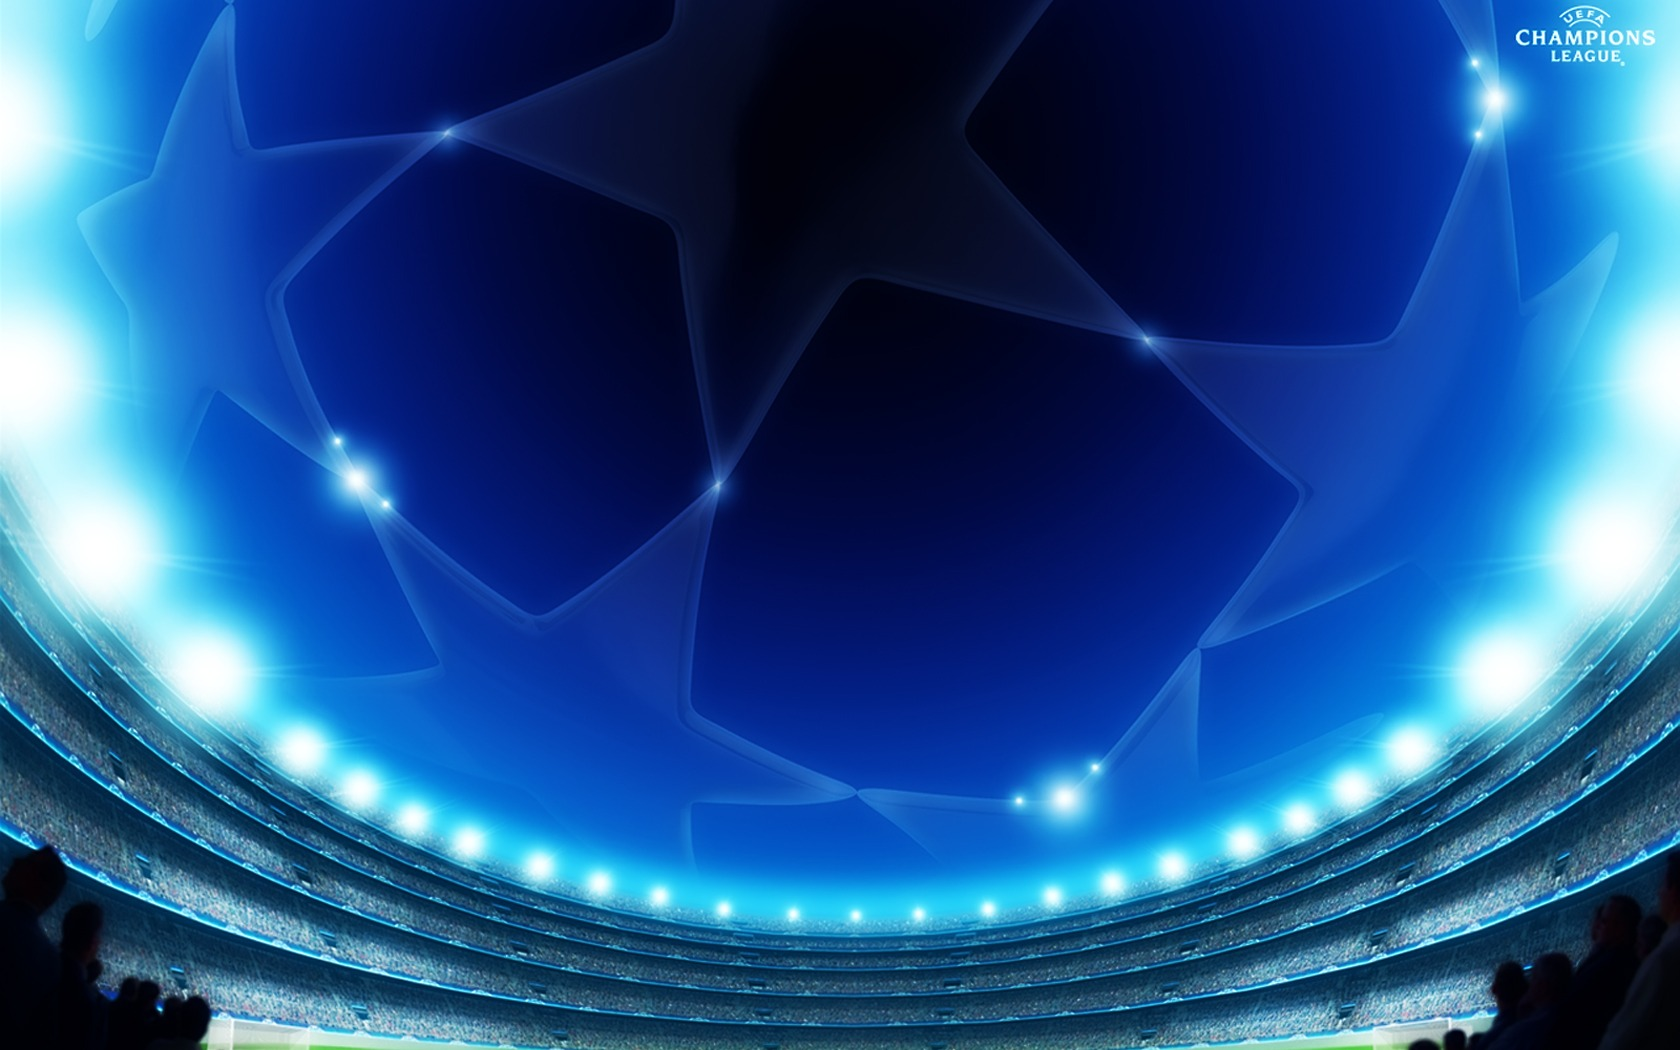 UEFA Champions League Wallpaper Football Sports Wallpapers in jpg format for free download